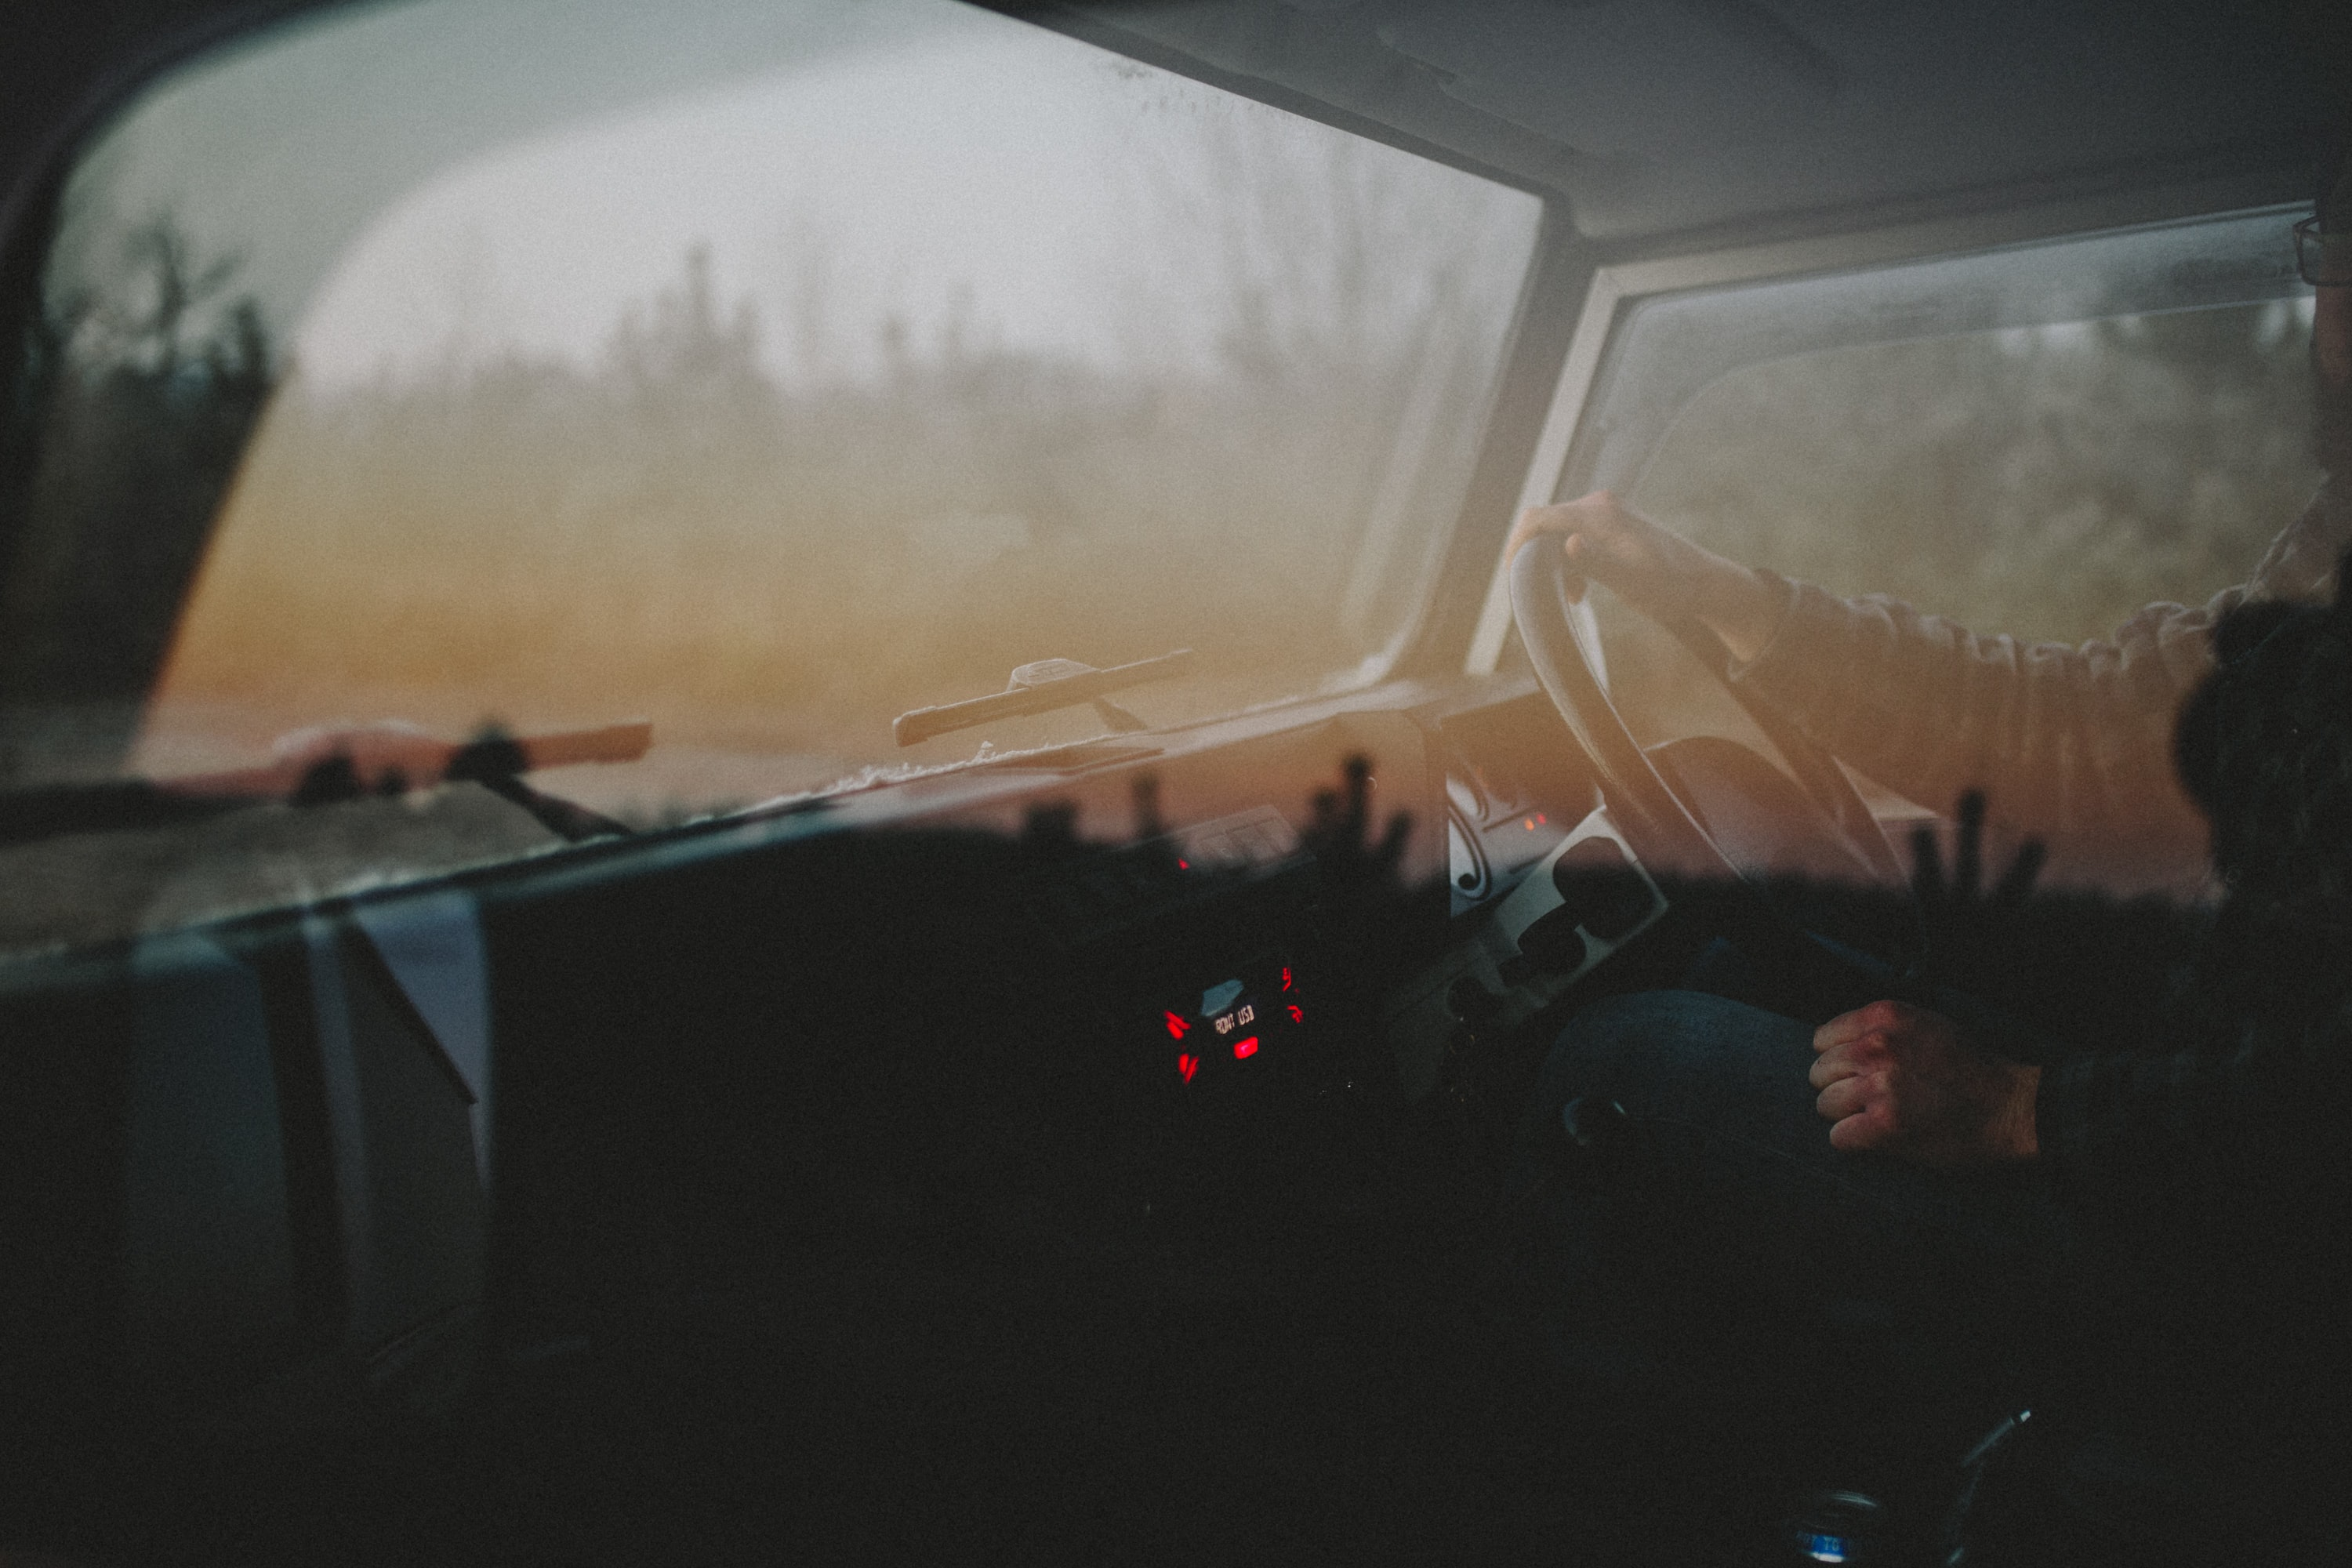 Looking into dashboard of car with driver and steering wheel, window reflects trees